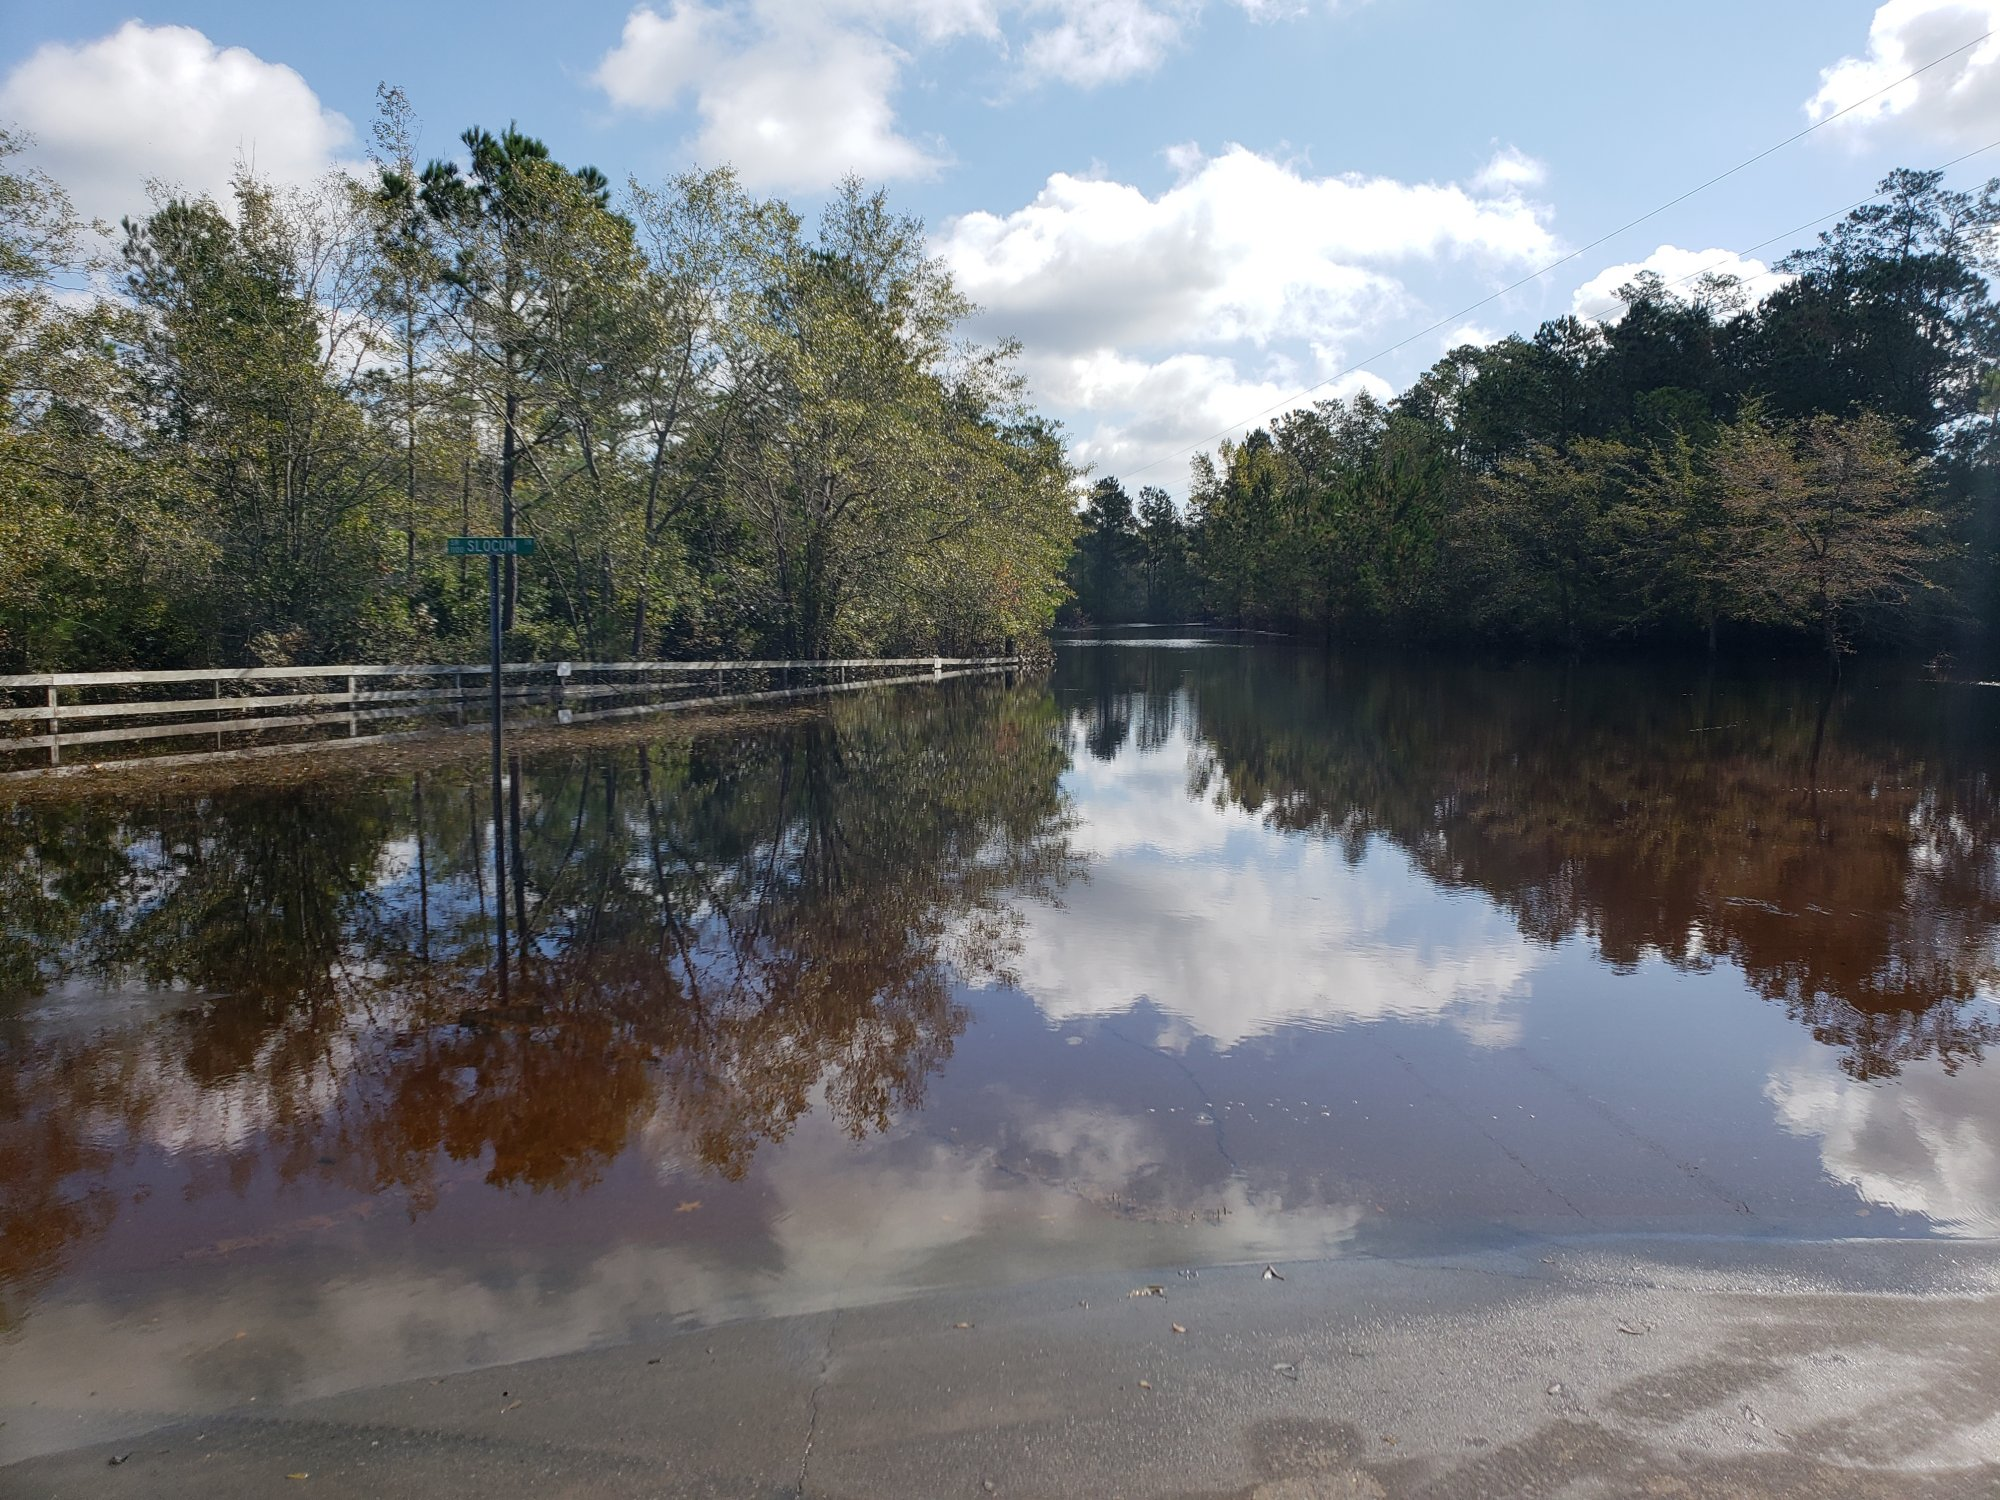 Flooding at Battleground Rd and Slocum Trail near Moores Creek in Currie, Pender County, NC